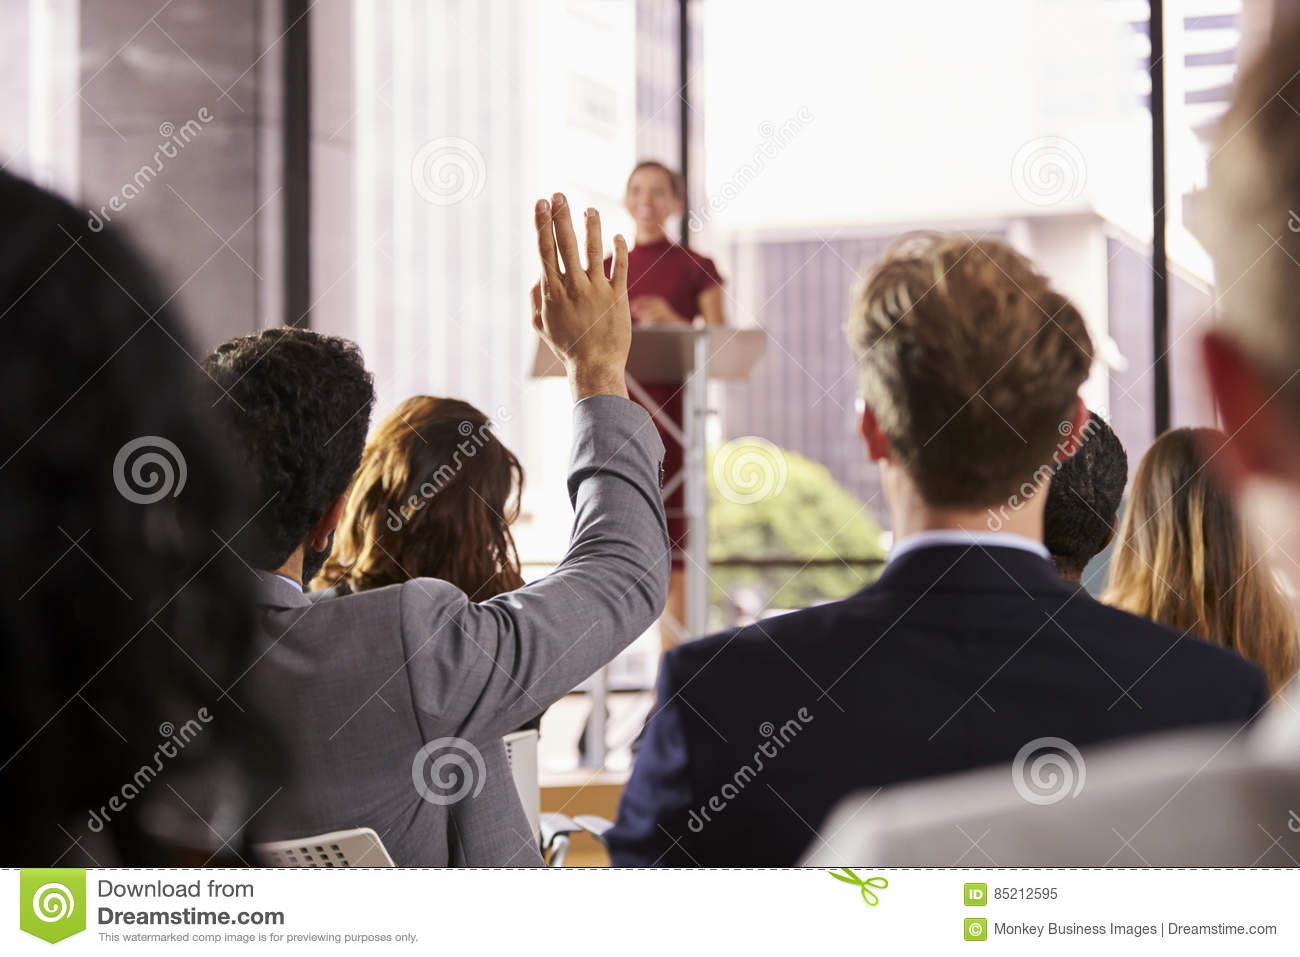 Presenter at business seminar takes a question from audience